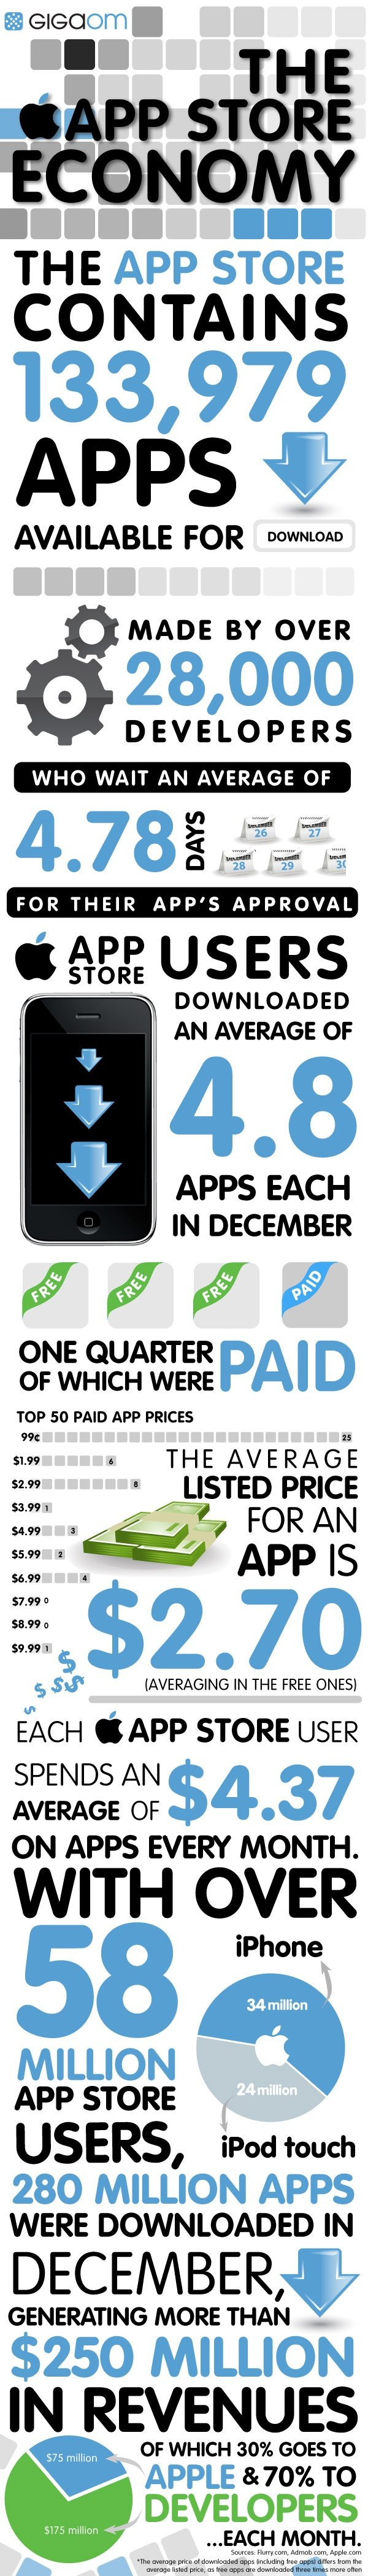 the app store economy infographic - how app store works